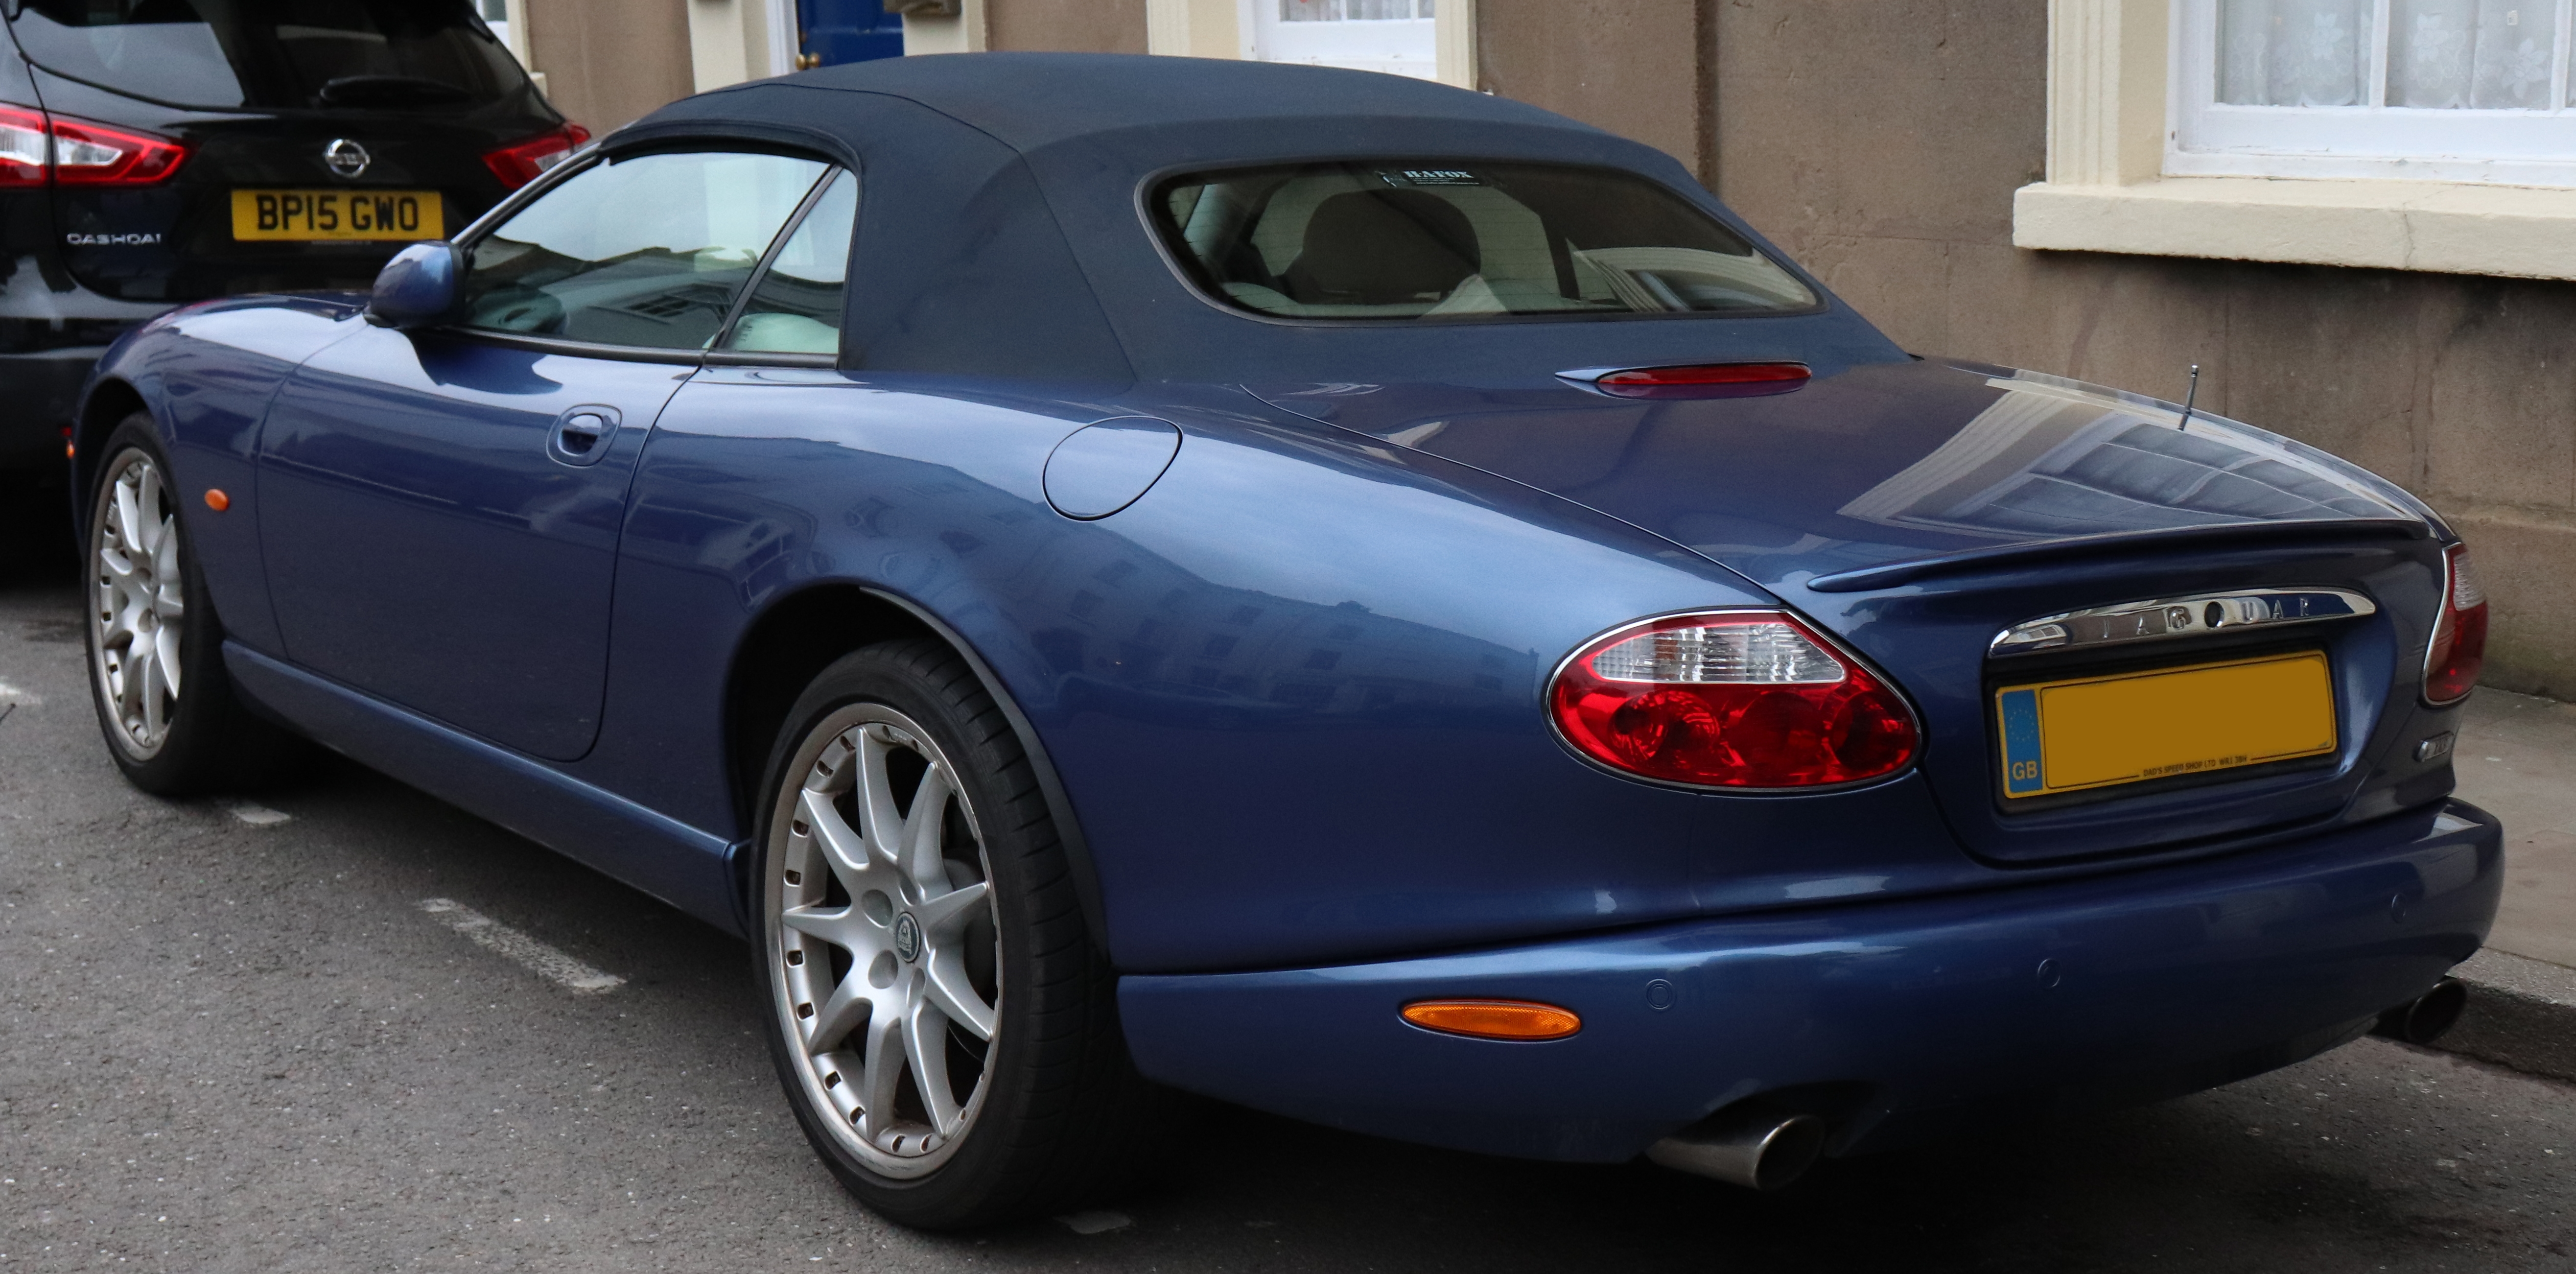 File:2005 Jaguar XK8 Convertible Automatic 4.2 Rear